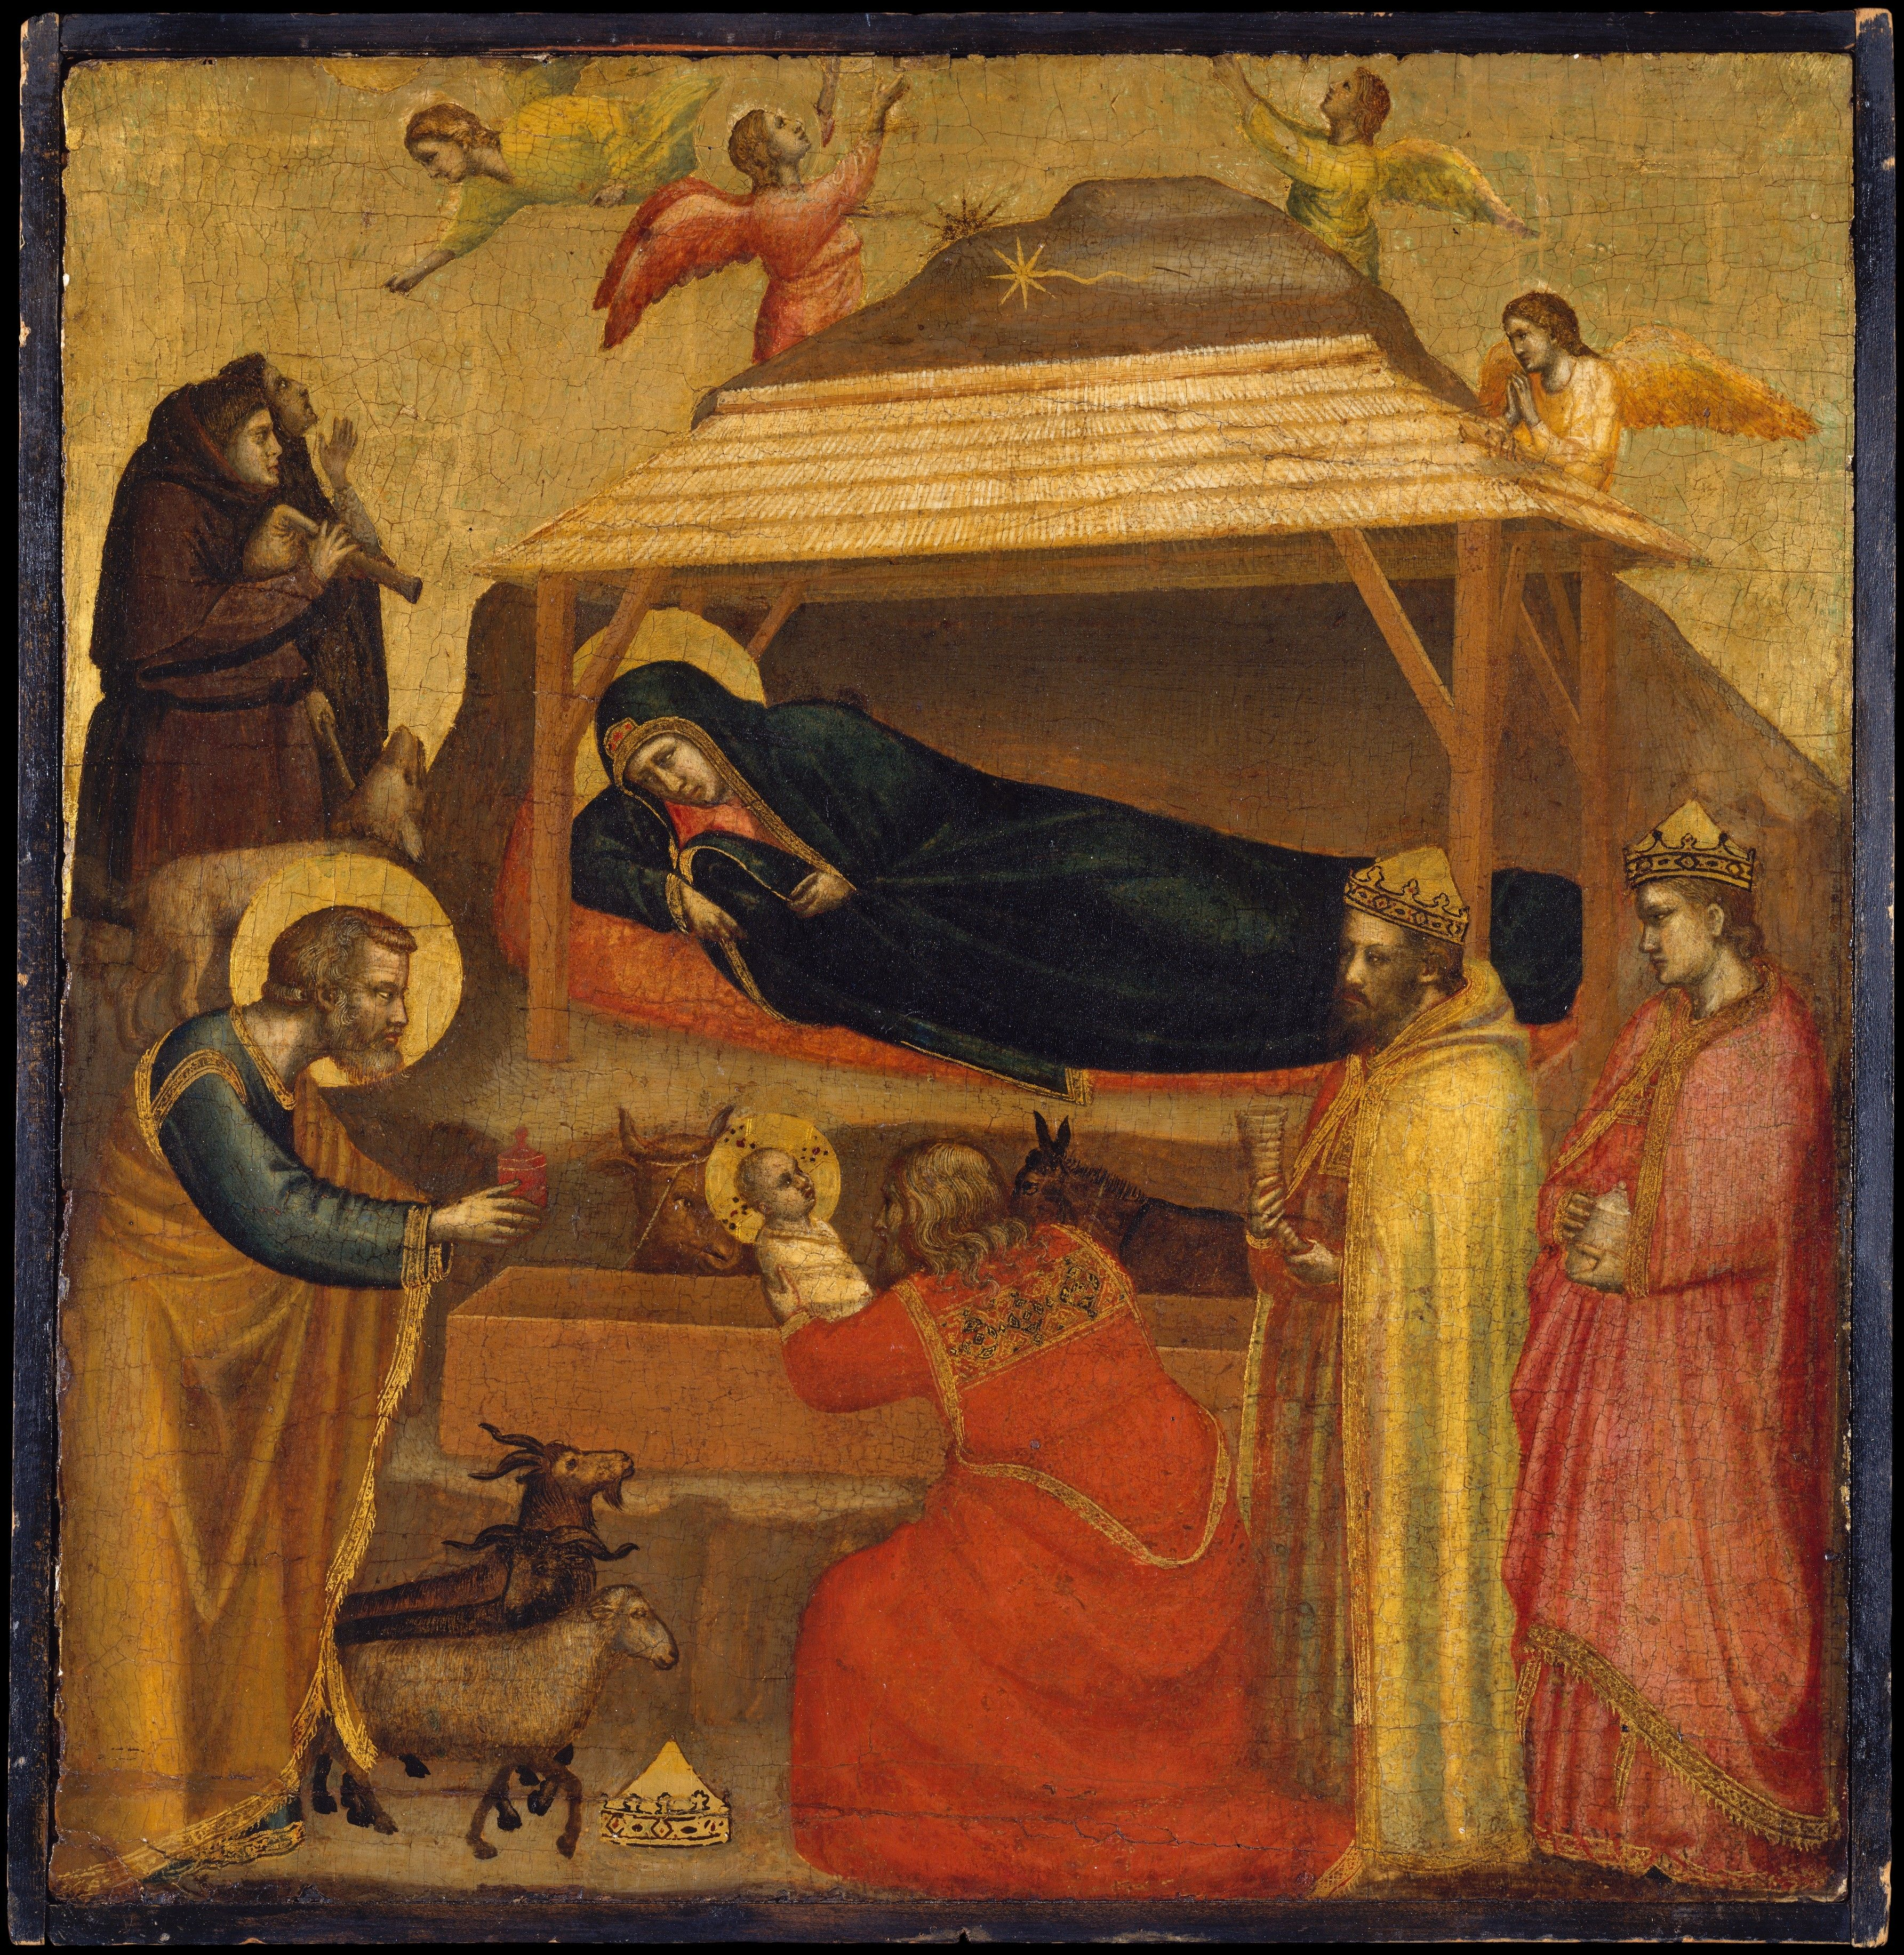 The Adoration of Magi by Giotto